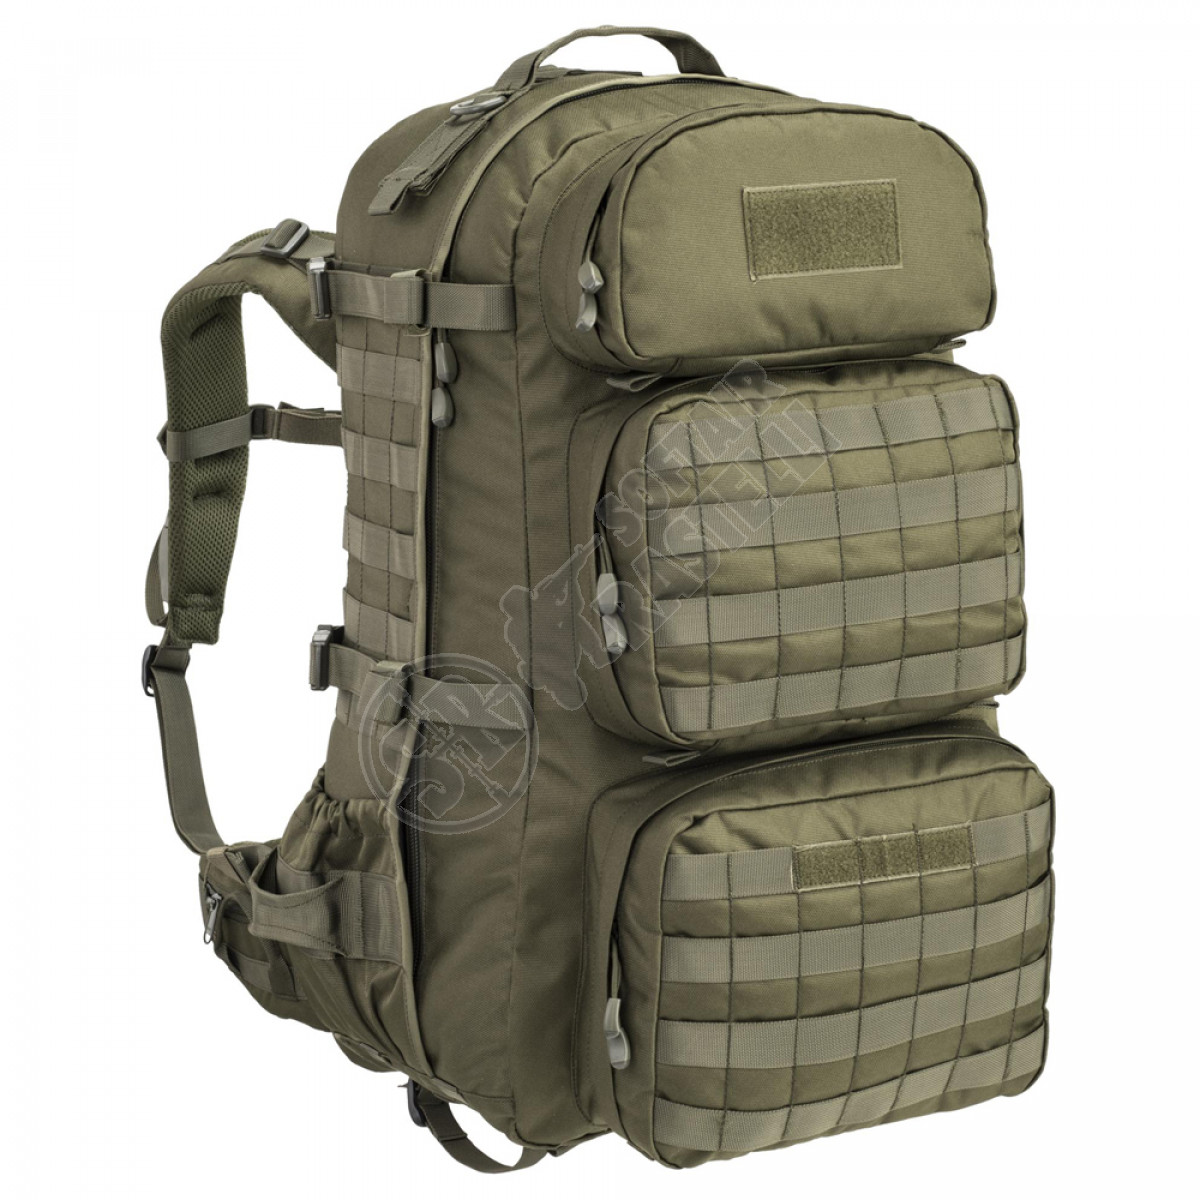 Instantly Pine Allergic  Zaino Ares Backpack da 50 Litri - Olive Drab